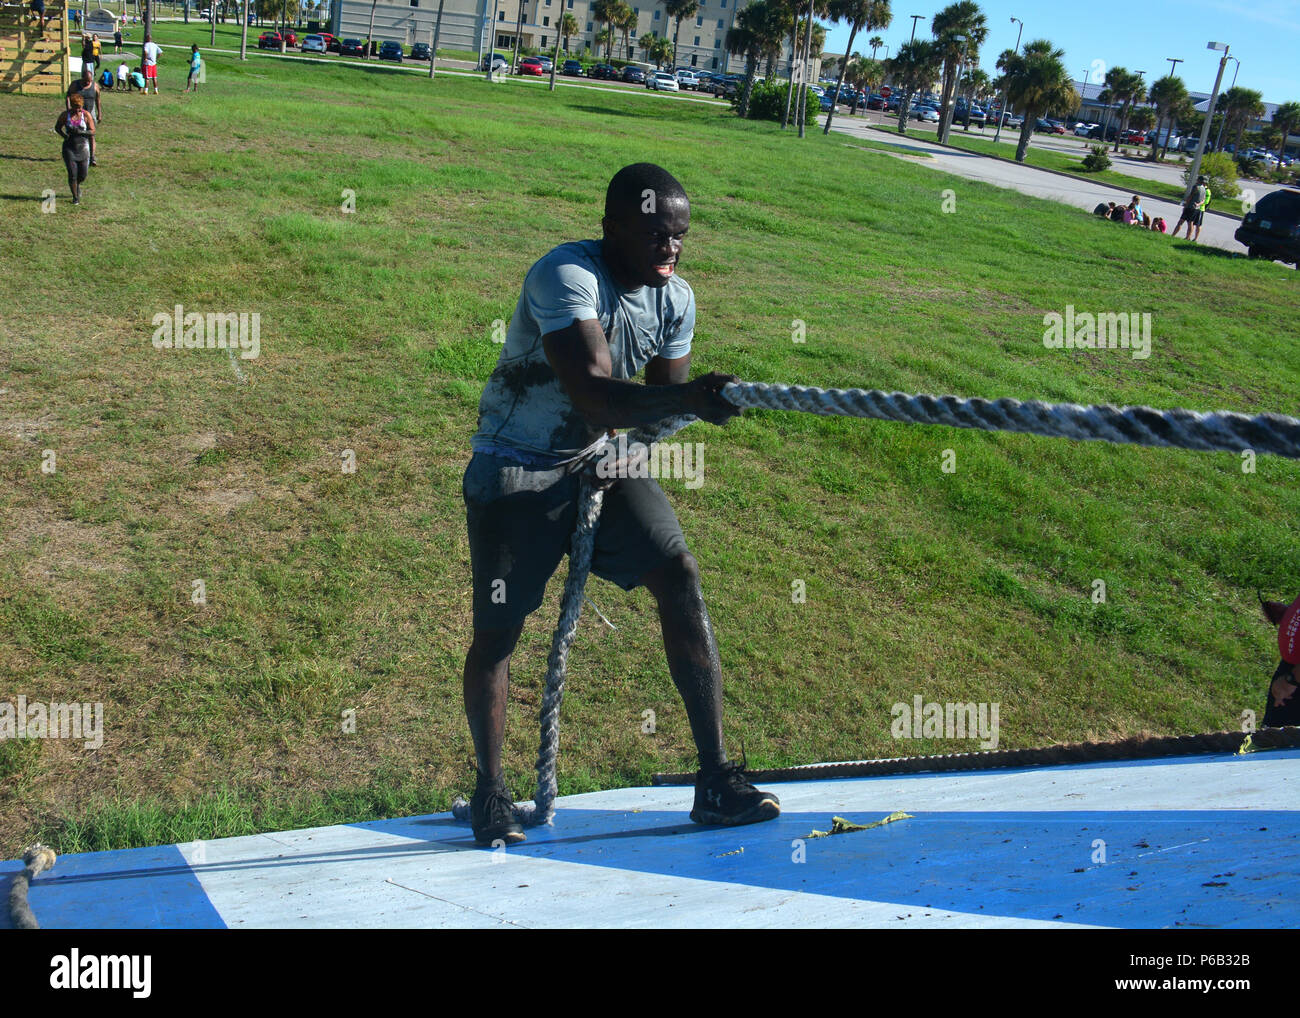 MAYPORT, Fla. (Aug. 20, 2016) – Information Systems Technician 1st Class Dinel Mesadieu, assigned to U.S. Naval Forces Southern Command/U.S. 4th Fleet climbs a slanted wall while participating in the Morale, Welfare (MWR) and Recreation Mud Run event. The mud run is an annual event hosted by MWR for service members and their families to participate in with 26 obstacles in the course. (U.S. Navy photo by Mass Communication Specialist 2nd Class Michael Hendricks/Released) - Stock Image